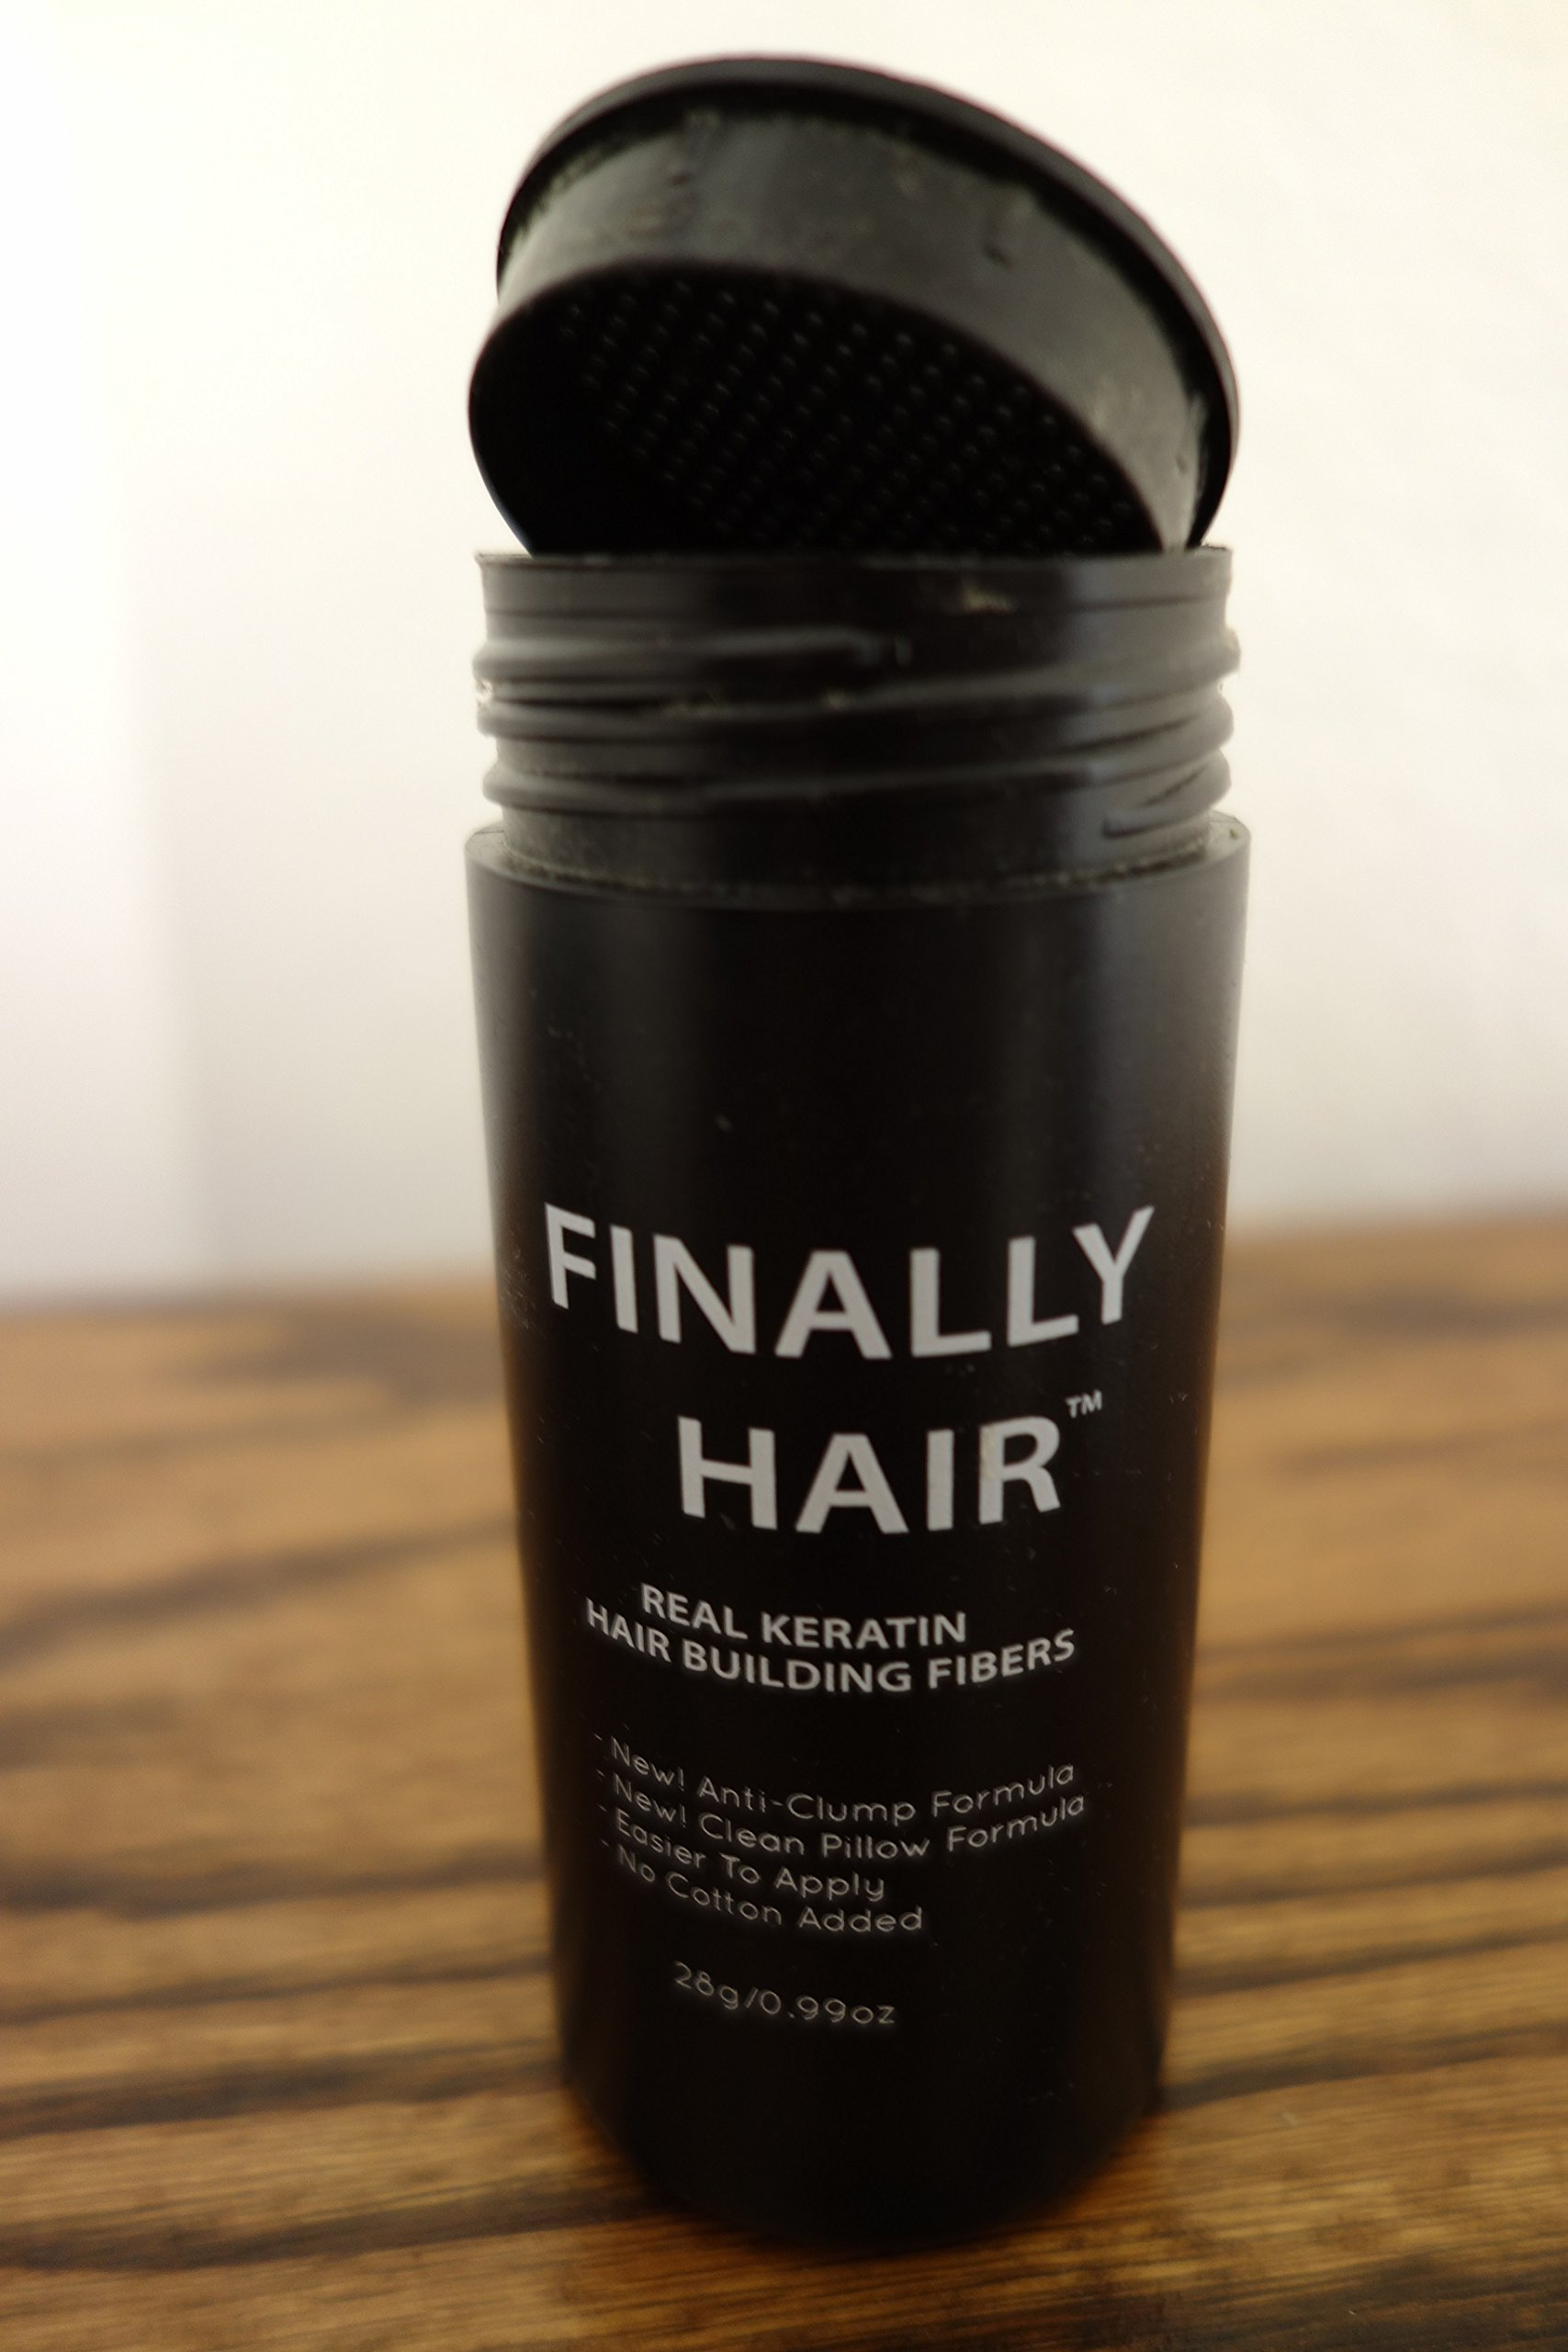 Hair Building Fibers 200 Grams 7 Oz. With Bottle By Finally Hair 50g4 (Light Salt and Pepper (light brown & grey special formula)) by Finally Hair (Image #6)